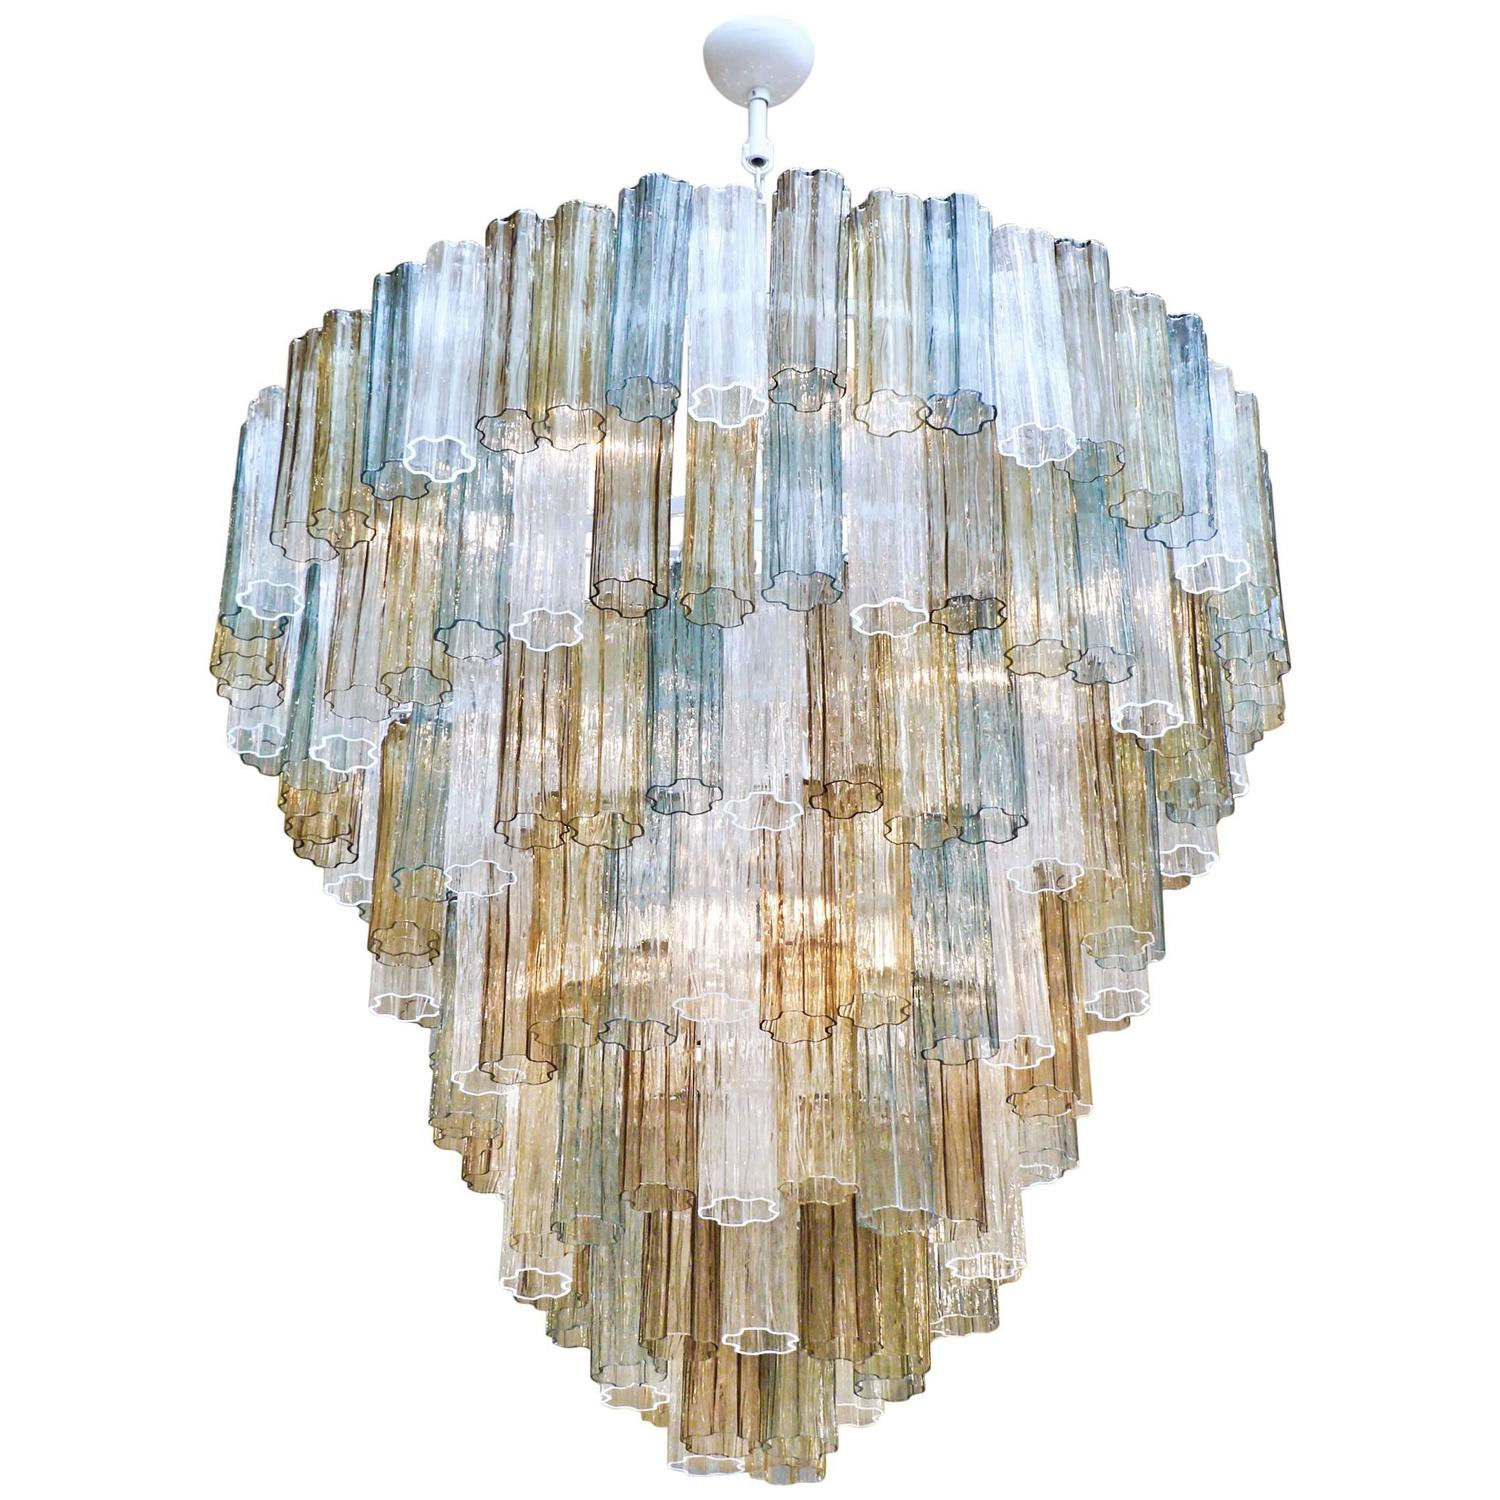 Mazzega style multicolored murano glass chandelier for sale at 1stdibs aloadofball Choice Image